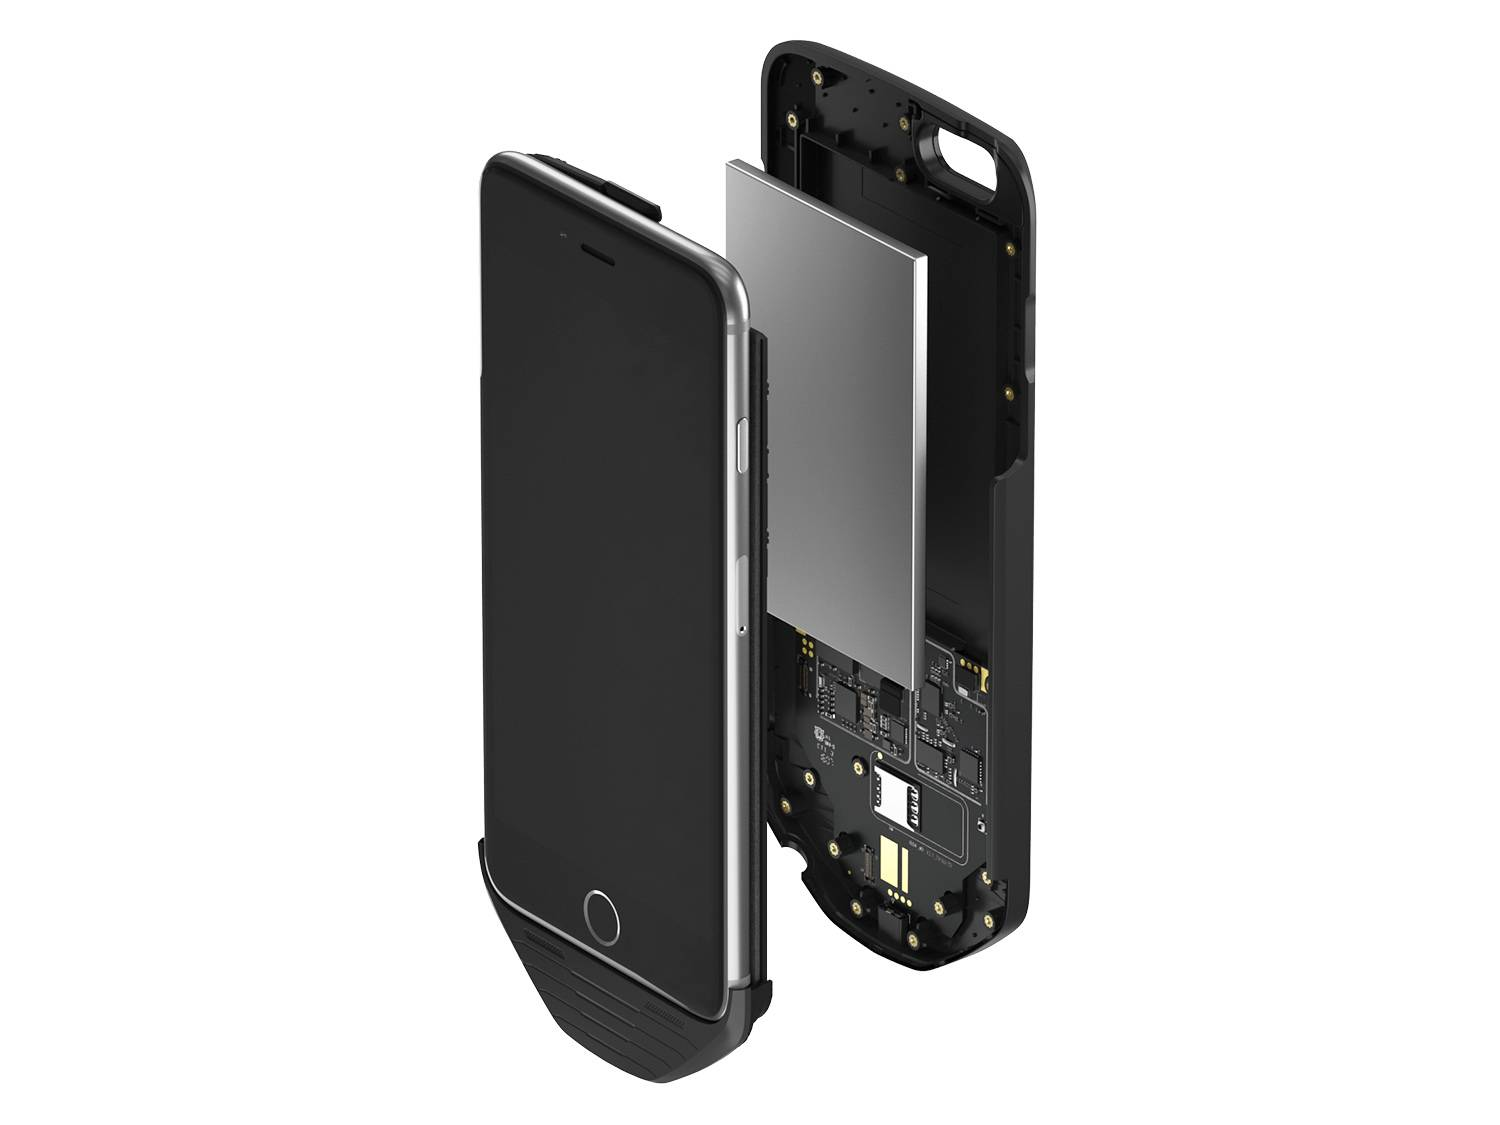 jijia-mesuit iPhone Dual system case battery PingWest 2